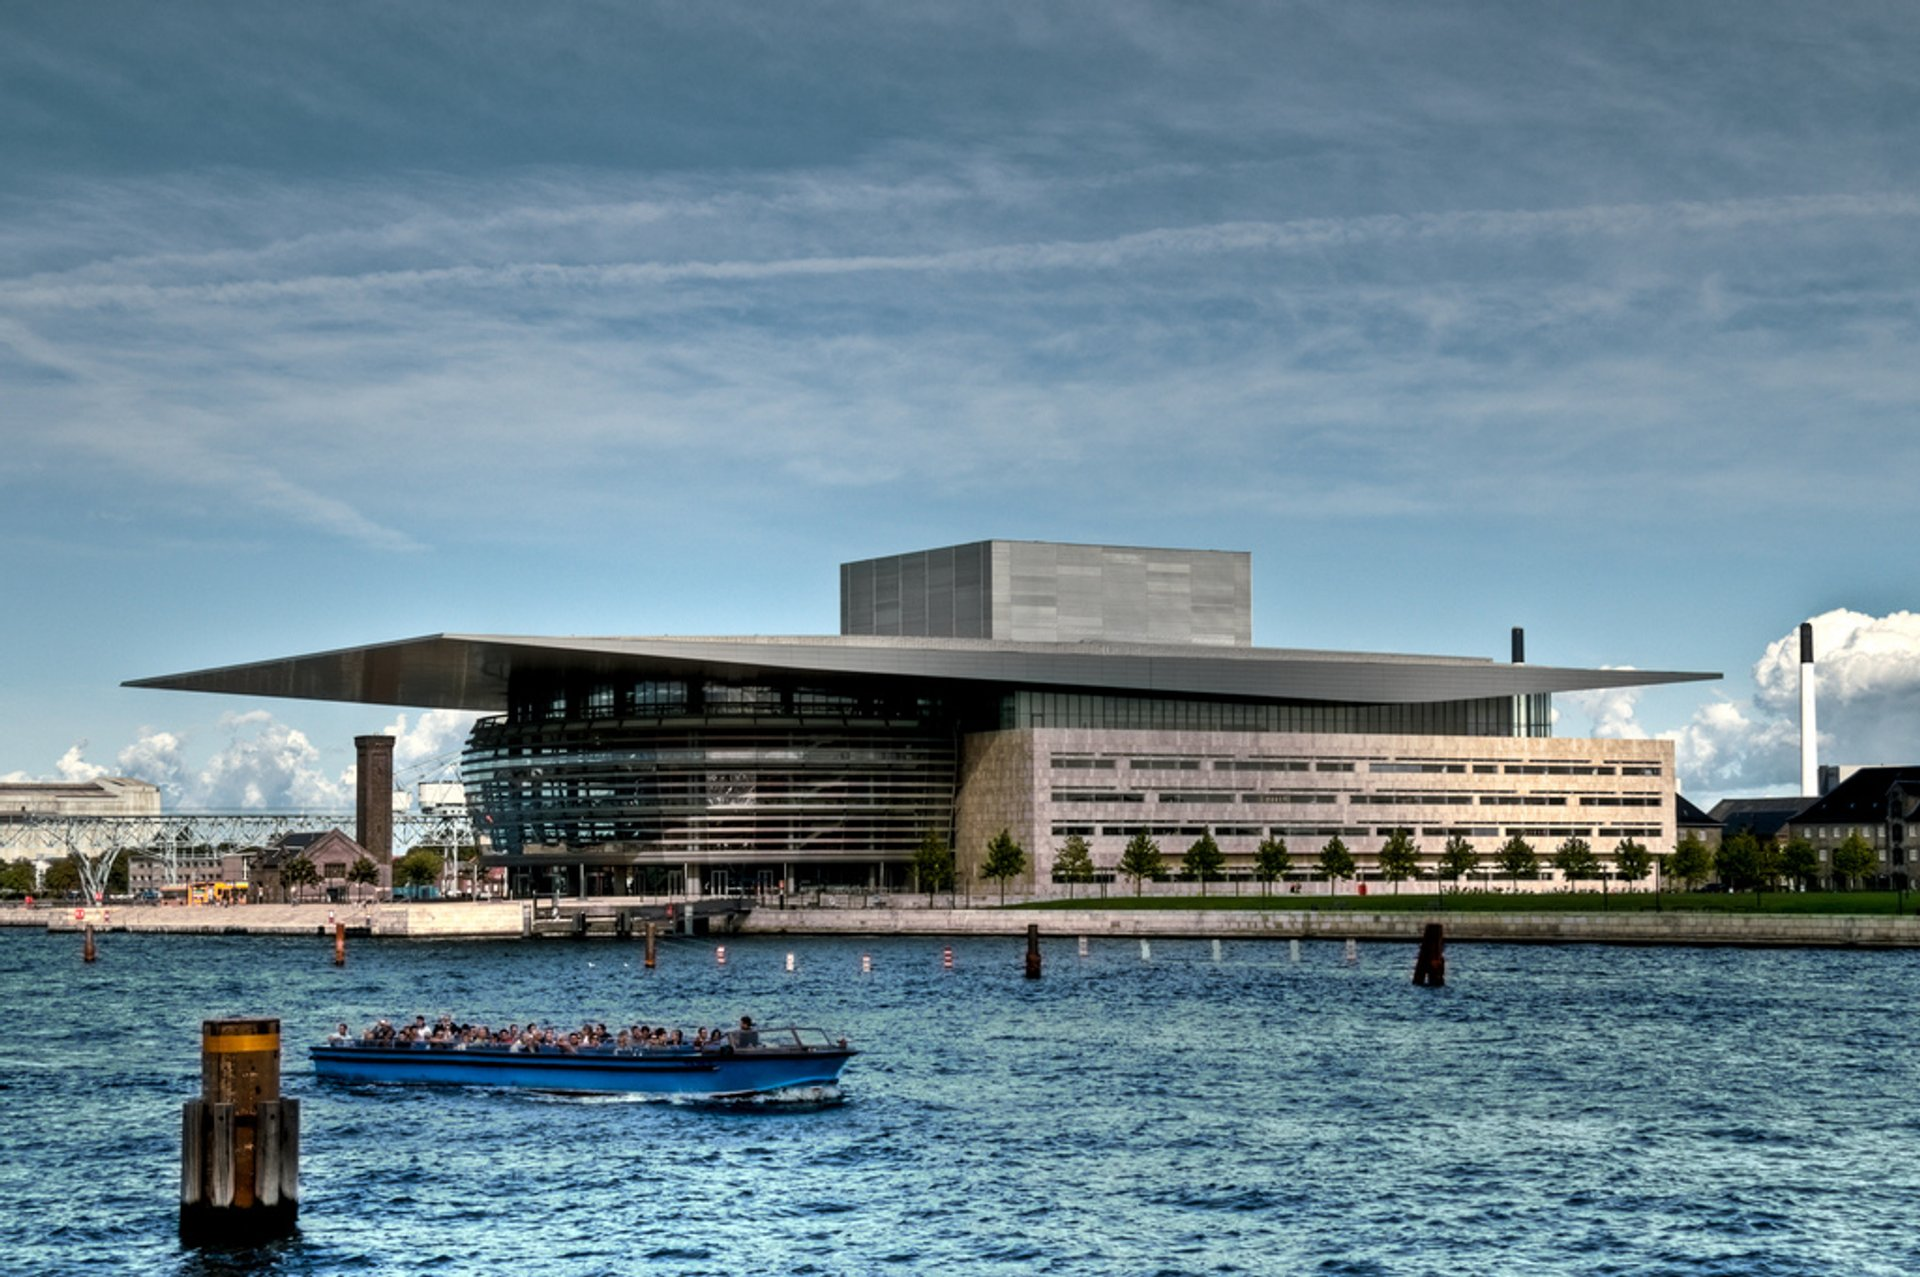 The Copehagen Opera House 2020